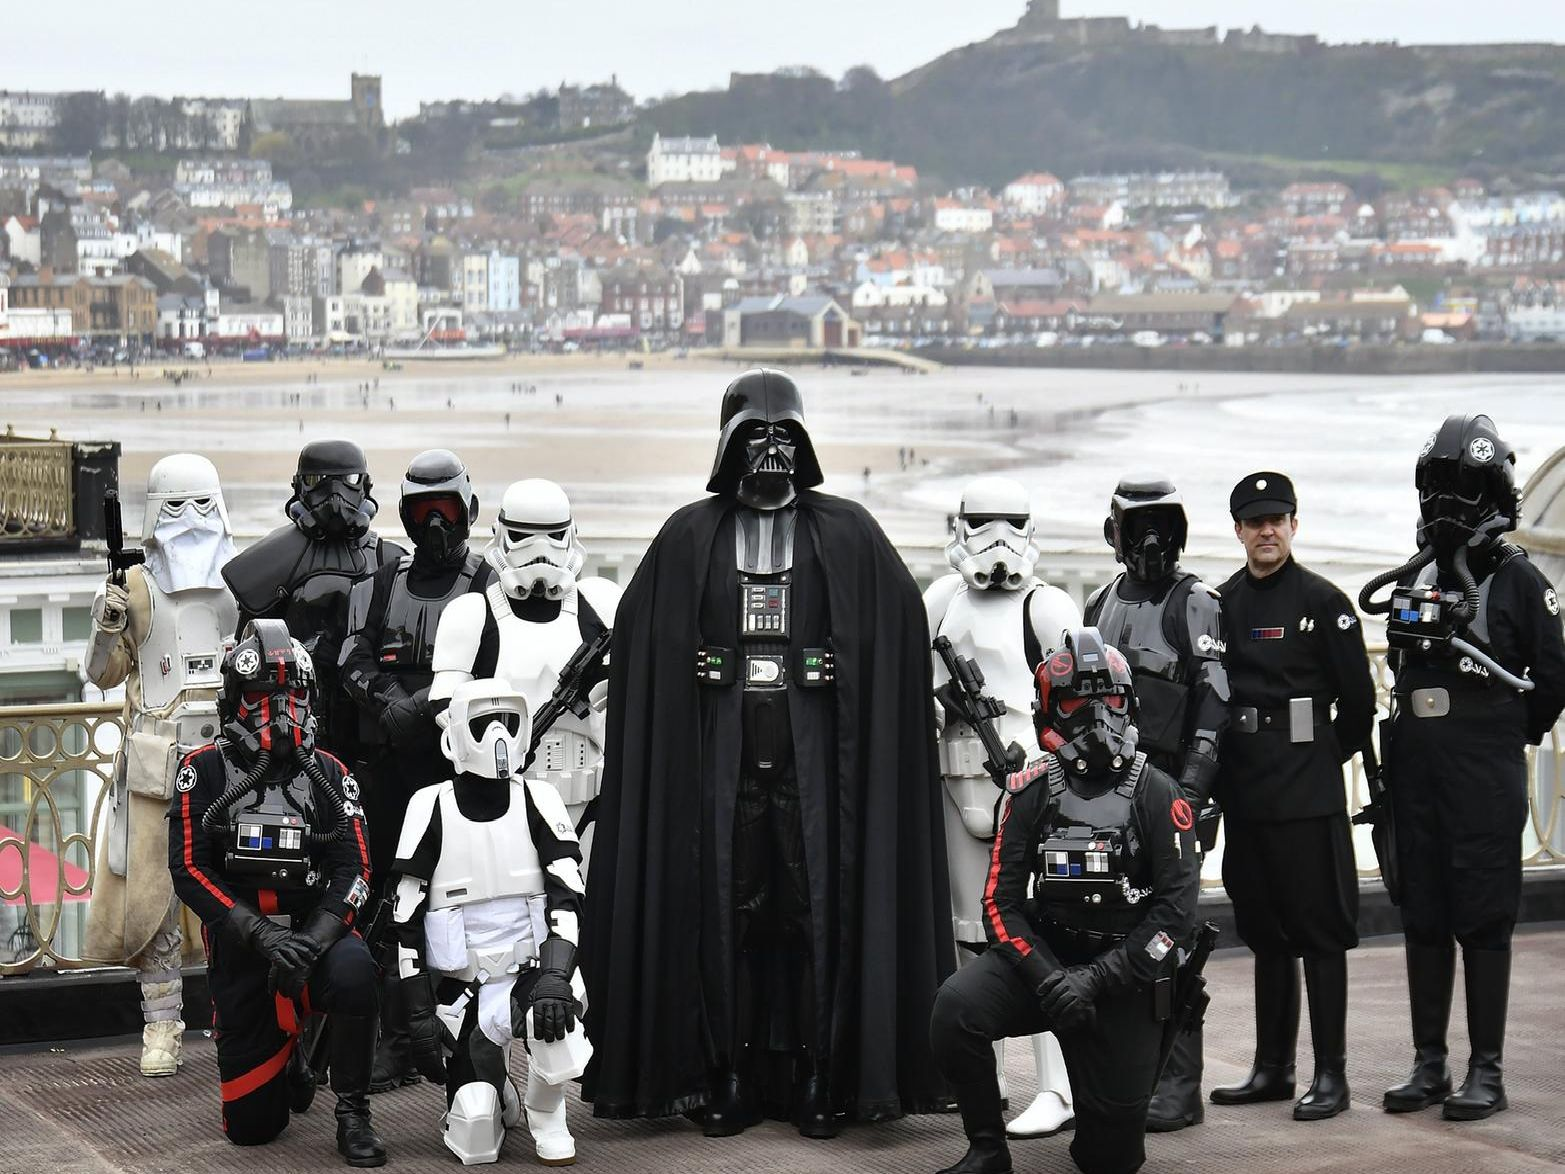 Darth Vader arrives with his Imperial troops.